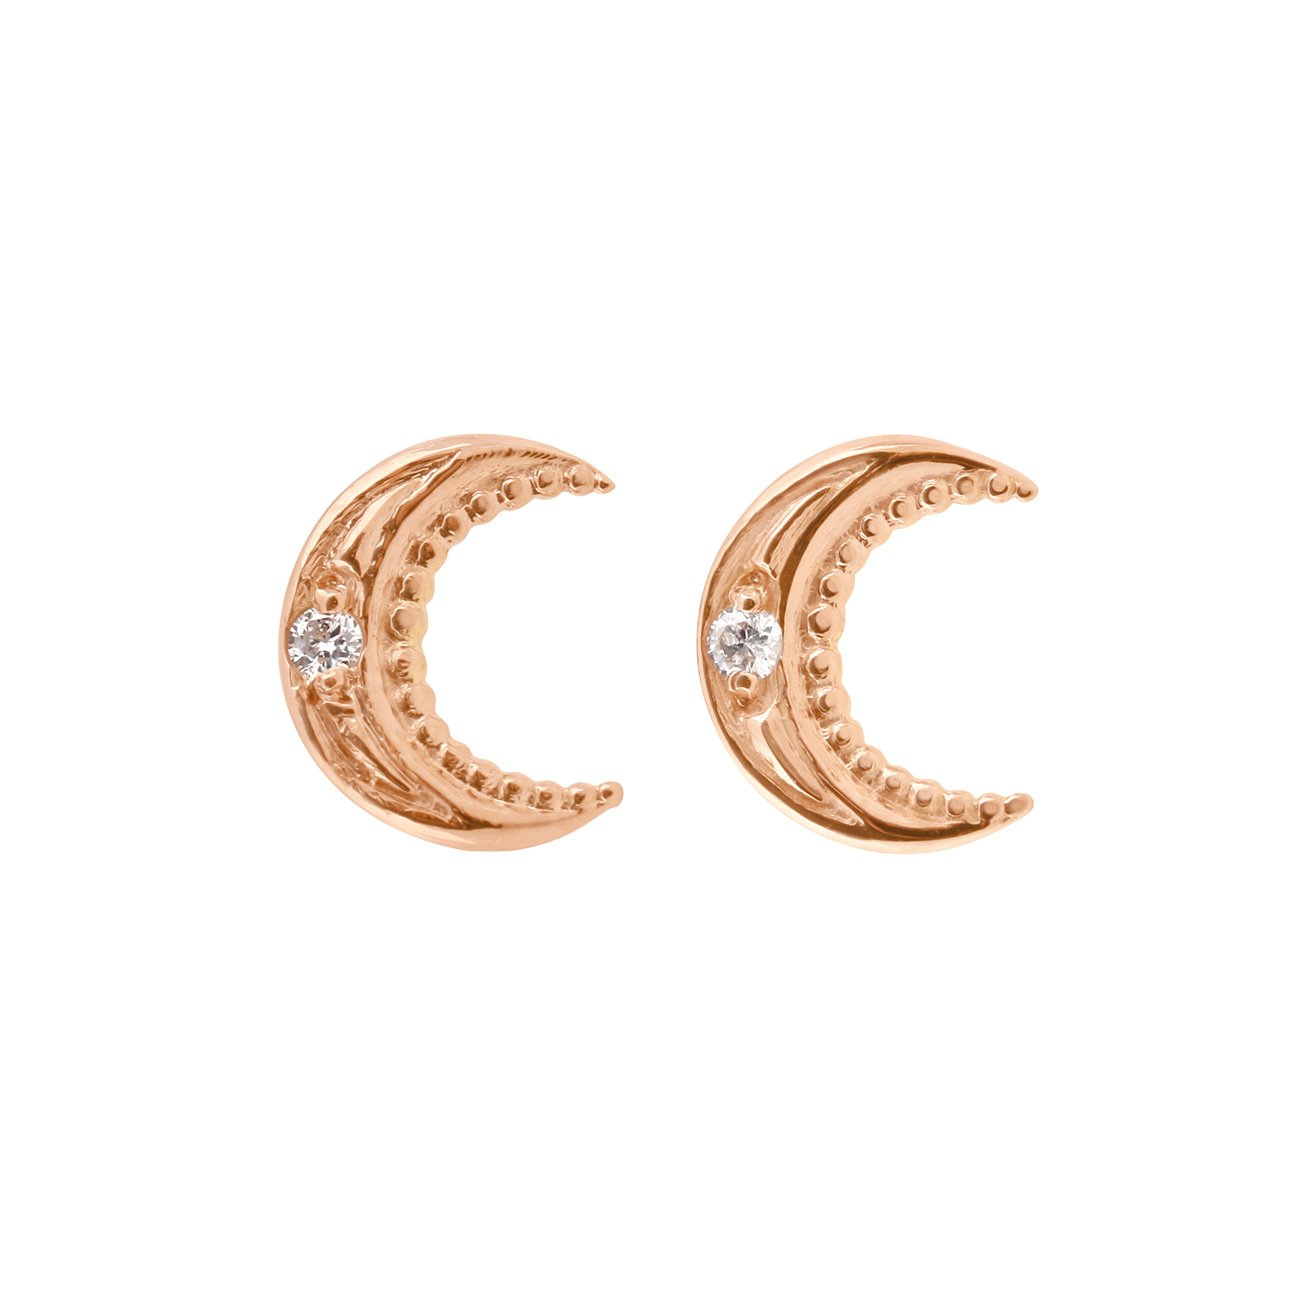 Gigi Clozeau - Petite Moon diamonds earrings, Rose Gold